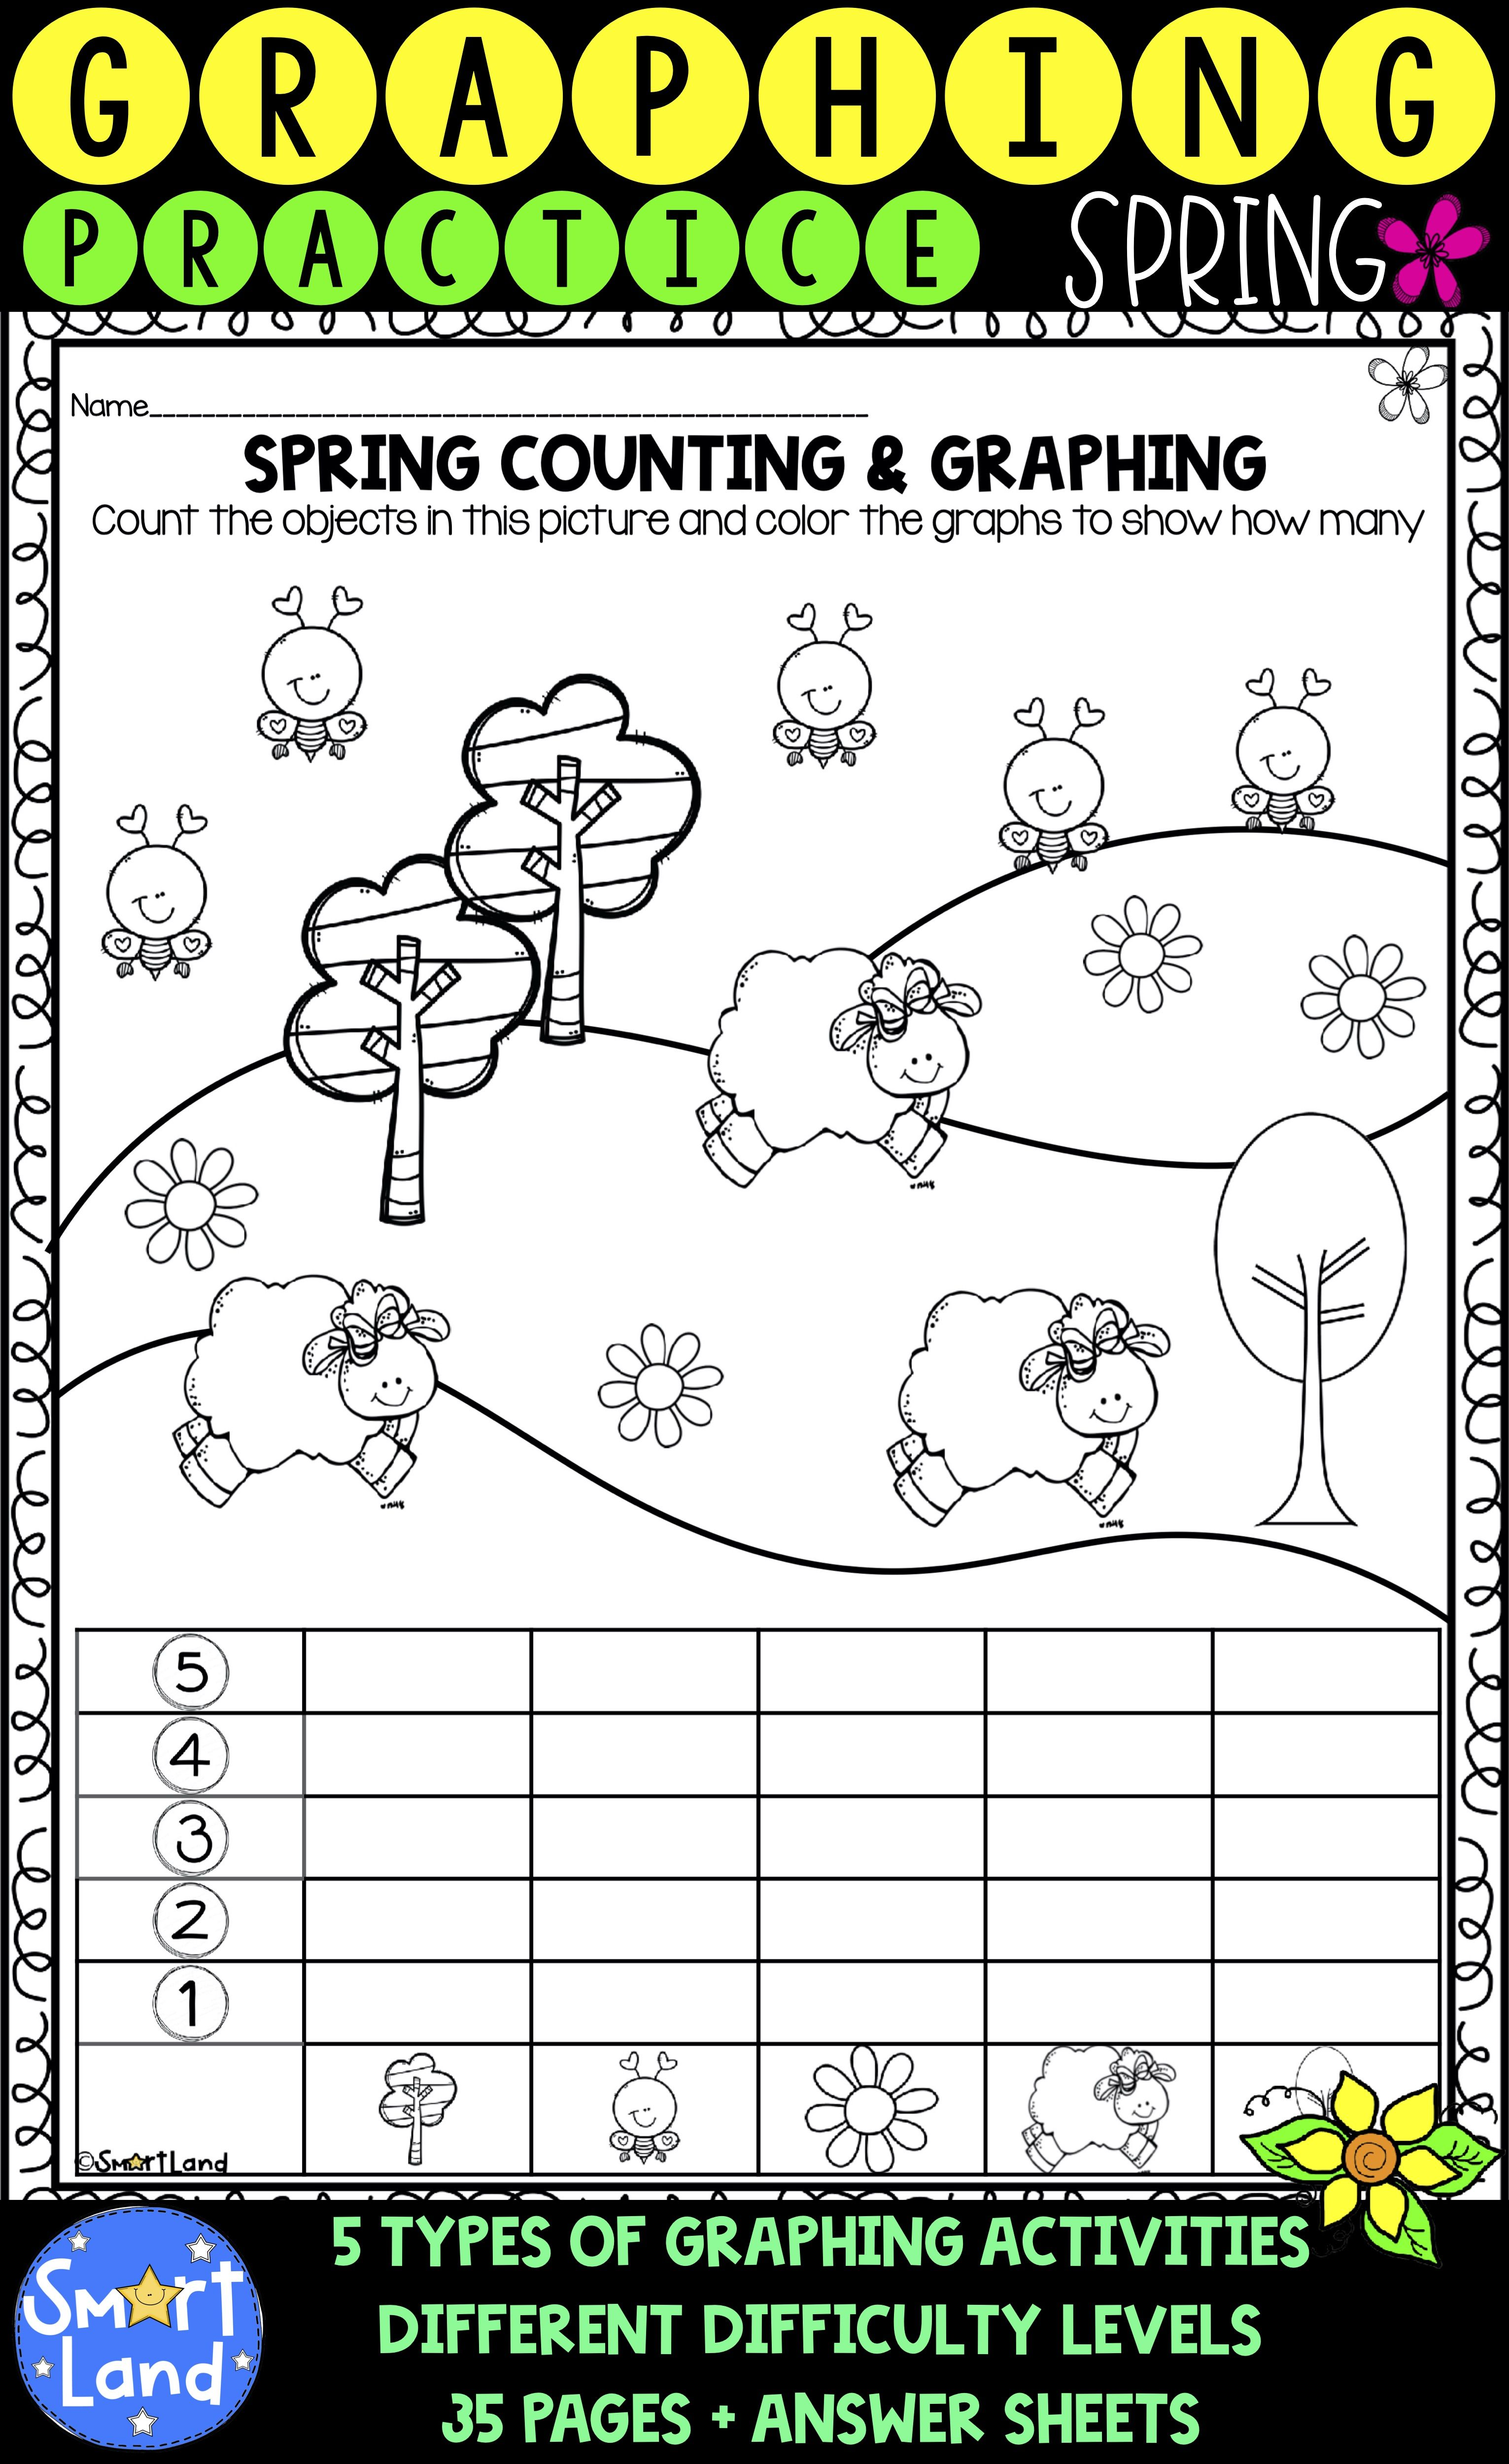 Enjoy 35 Practice Graphing And Counting Practice Pages